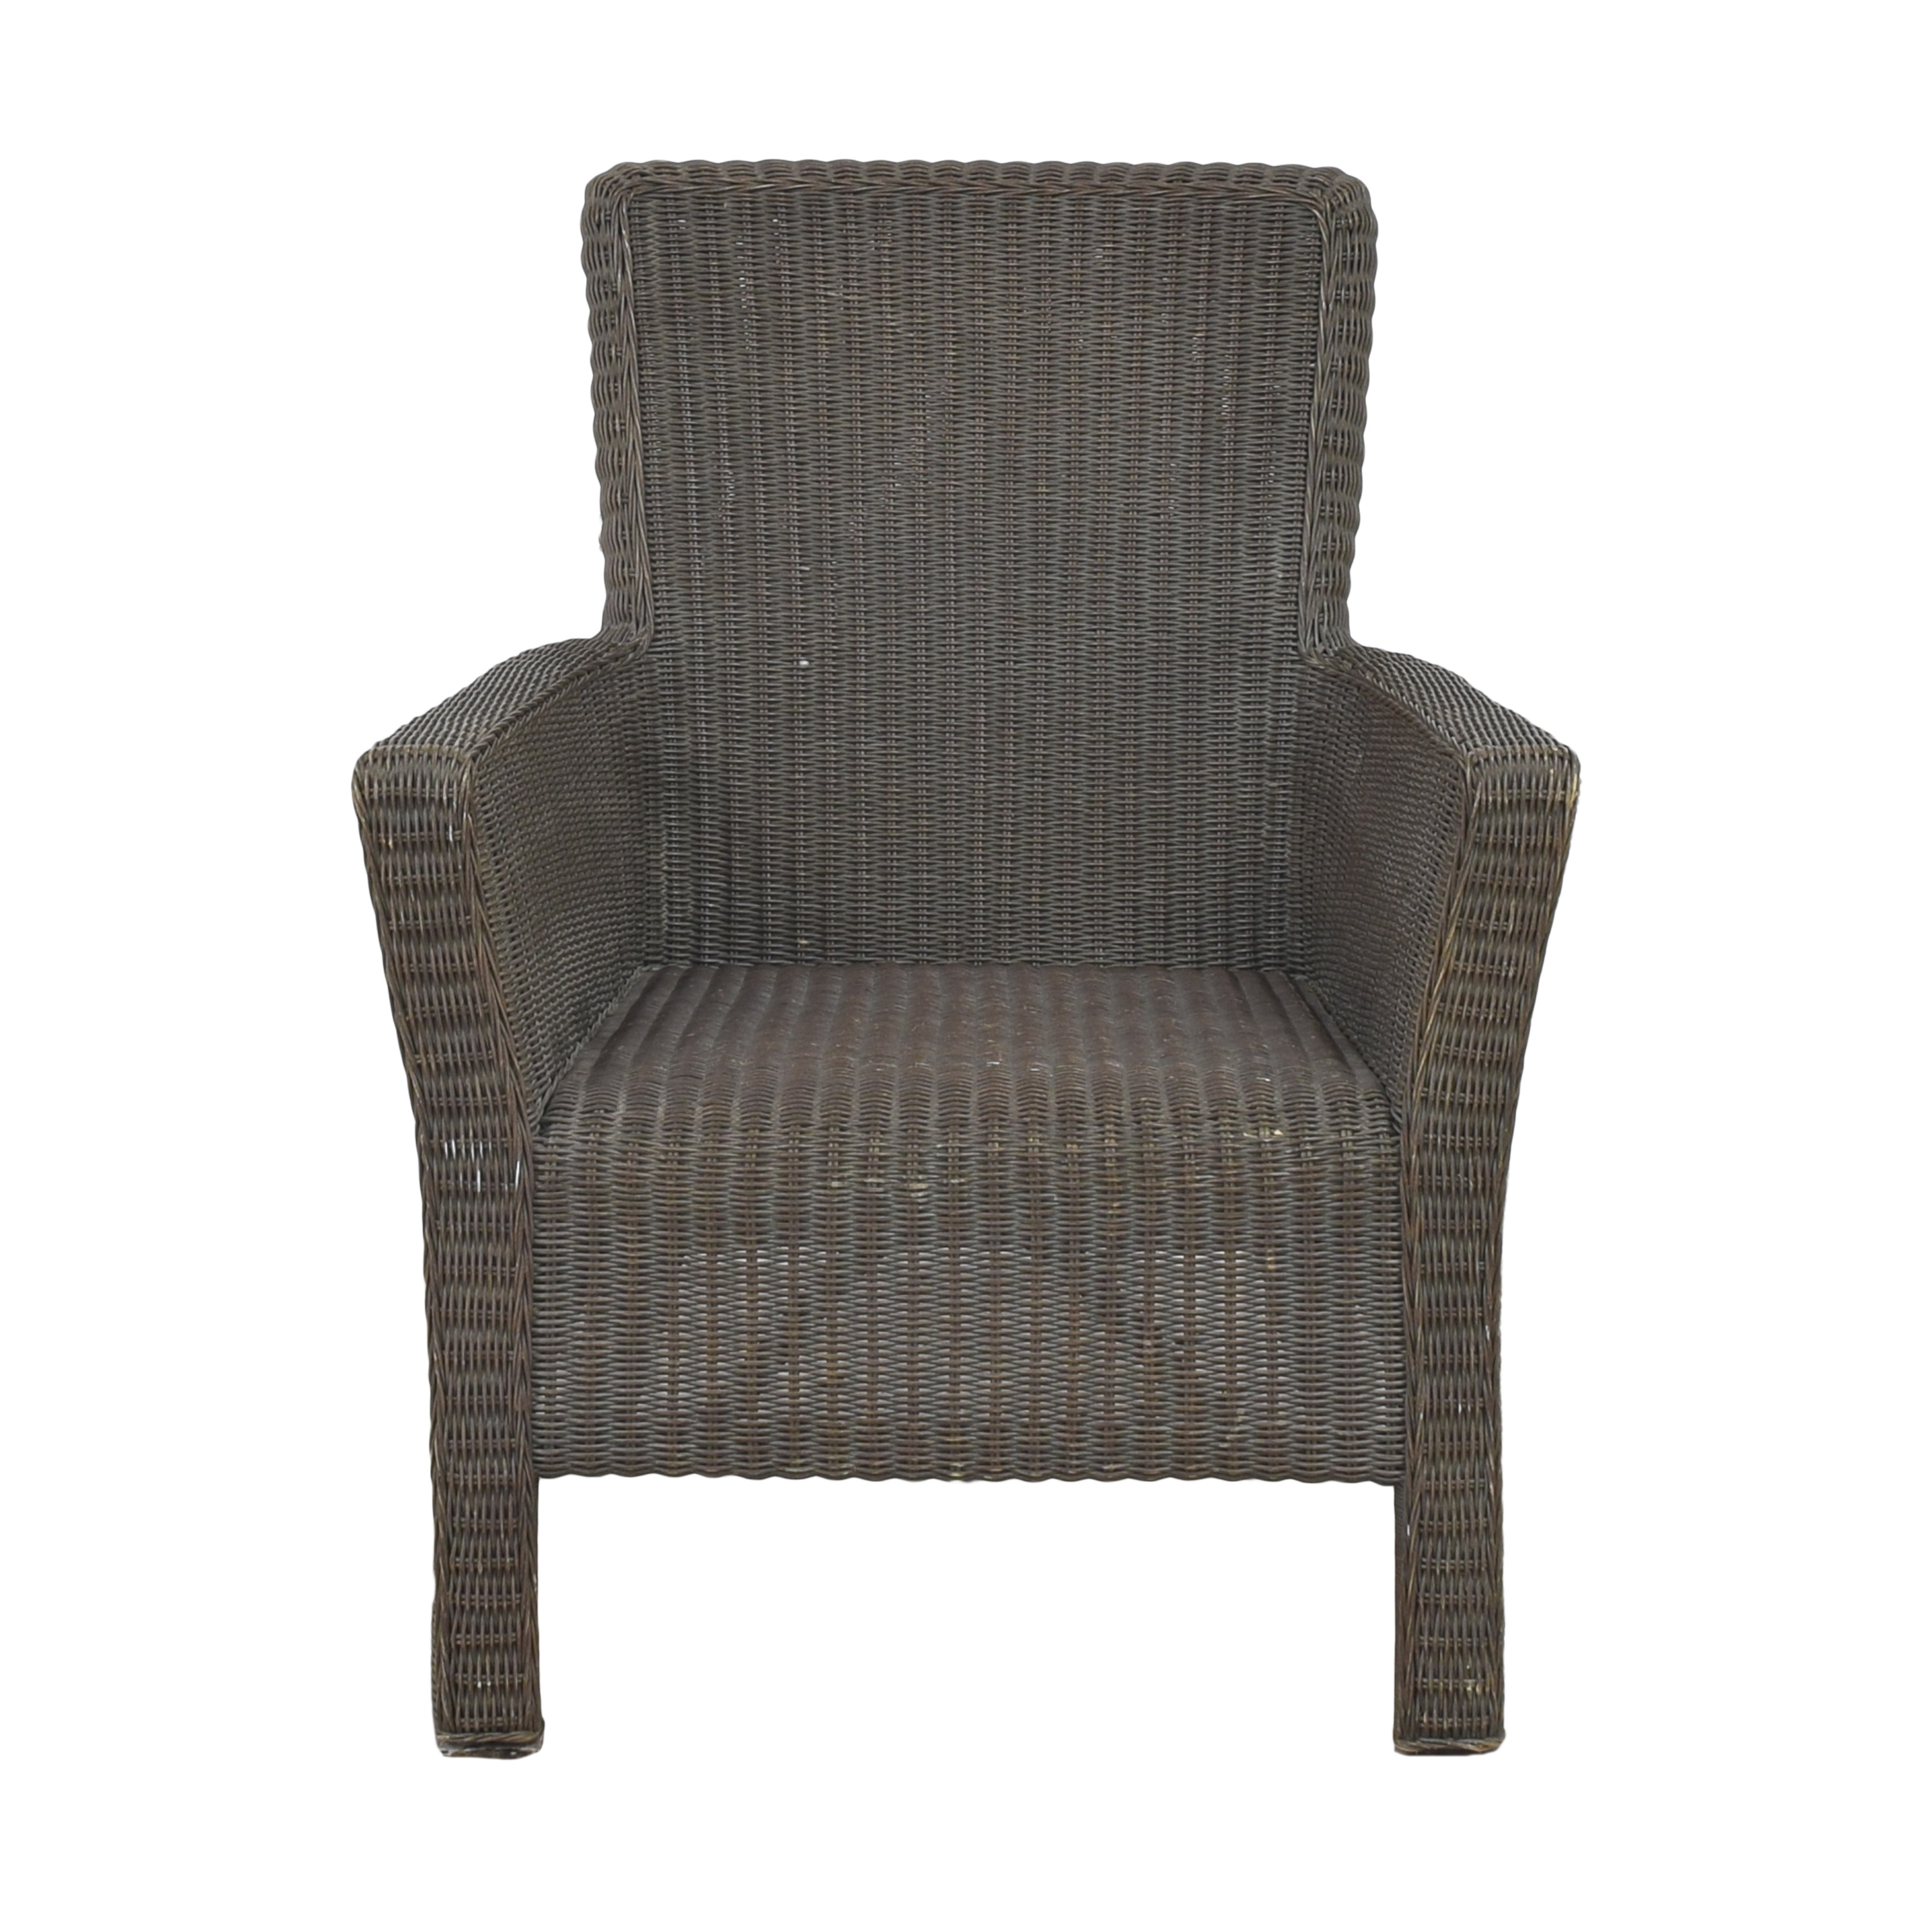 buy Crate & Barrel Wicker Arm Chair Crate & Barrel